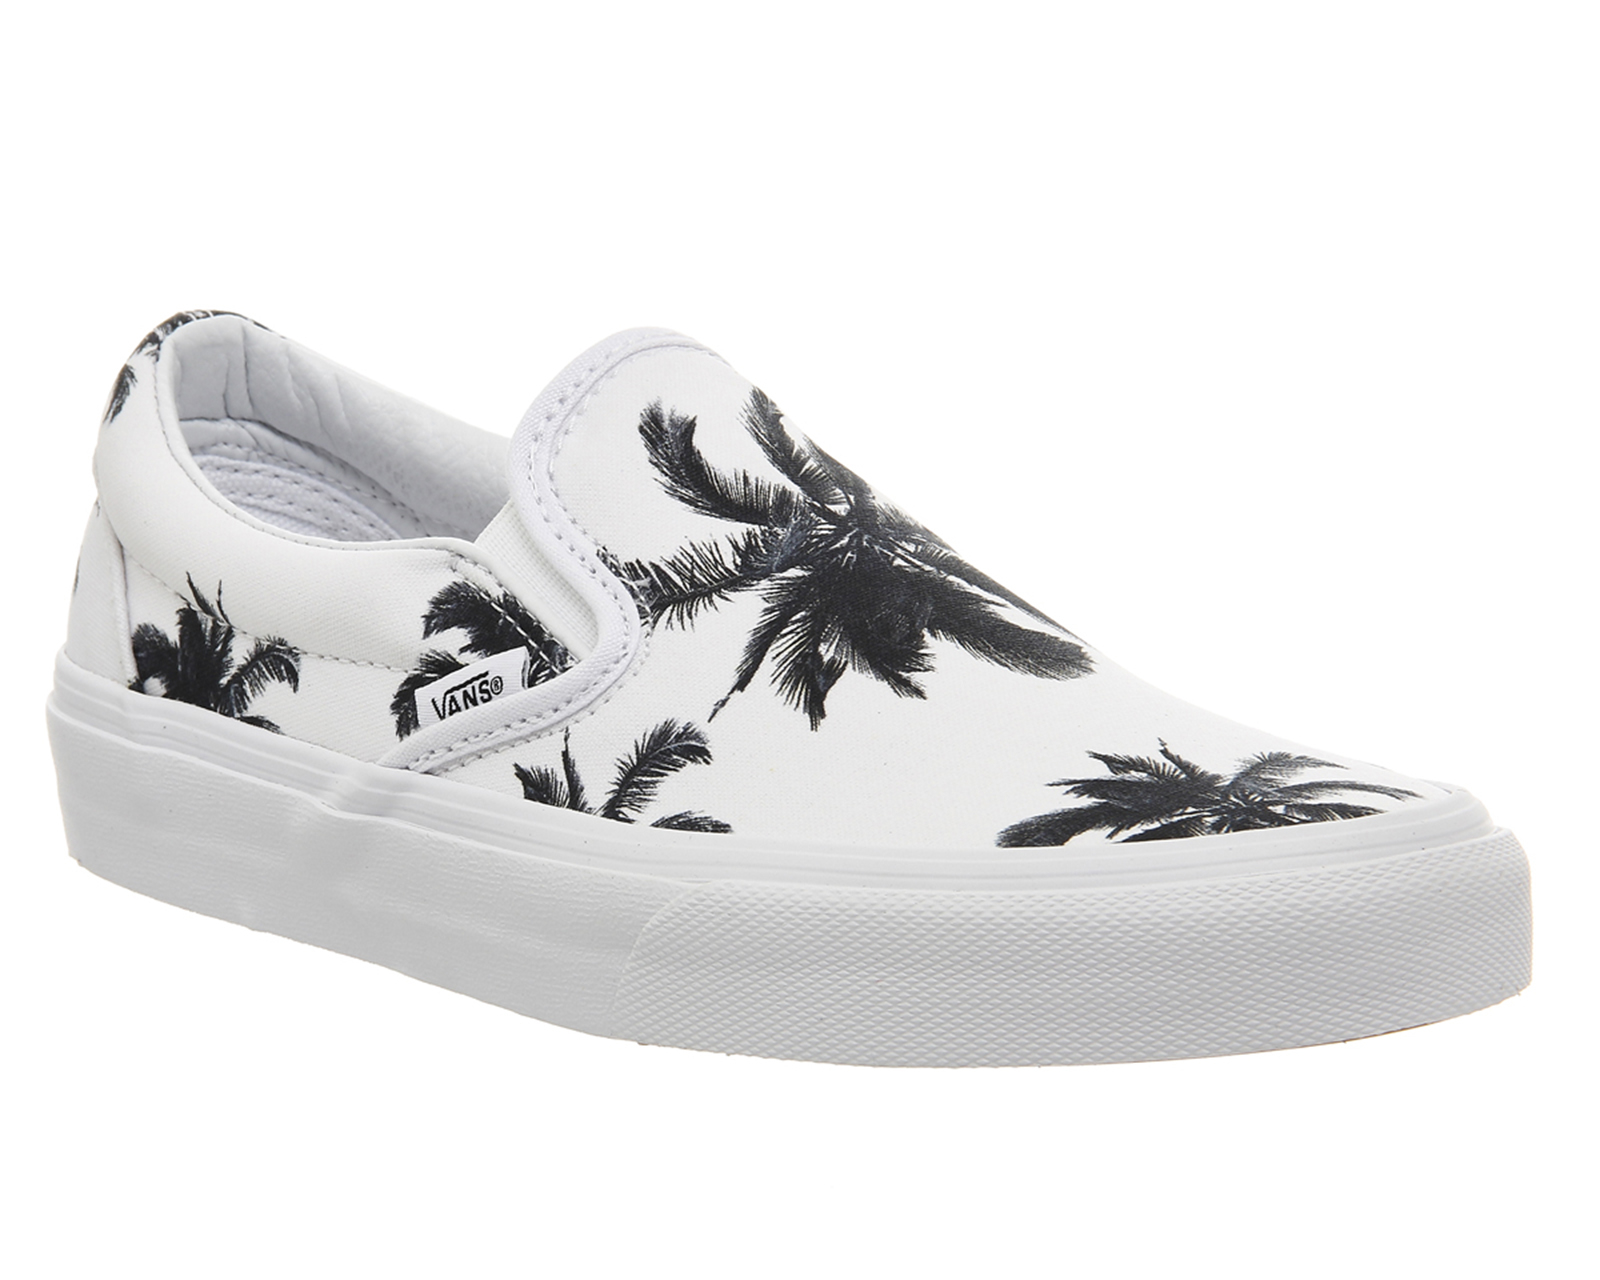 Vans Classic Slip On Shoes in White | Lyst